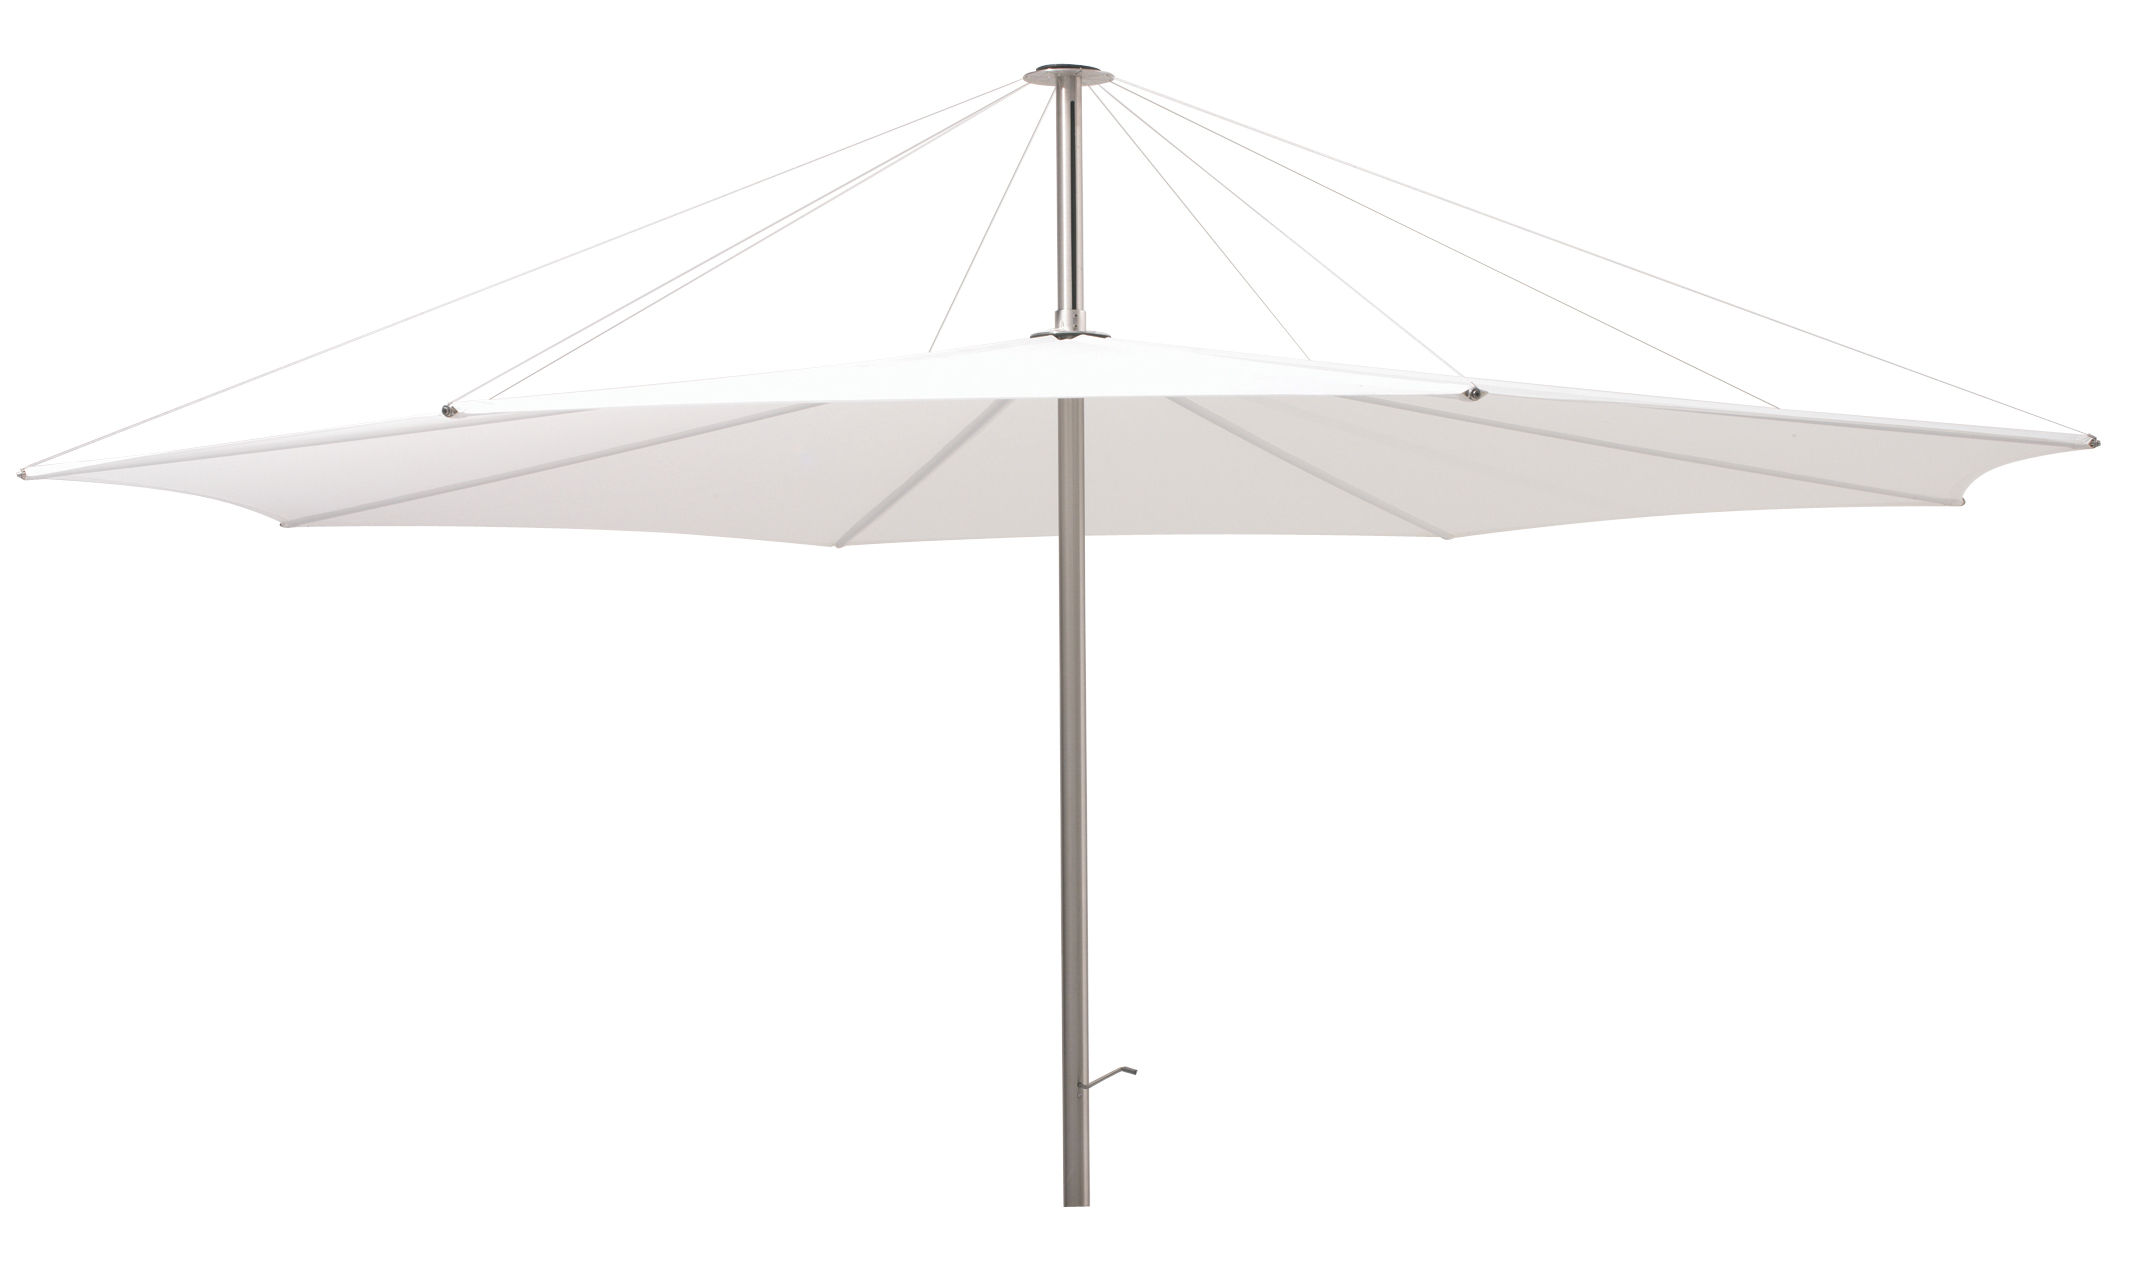 Outdoor - Parasols - Inumbra Parasol - Ø 400 cm by Extremis - White - Ø 400 cm - Polyester cloth, Stainless steel